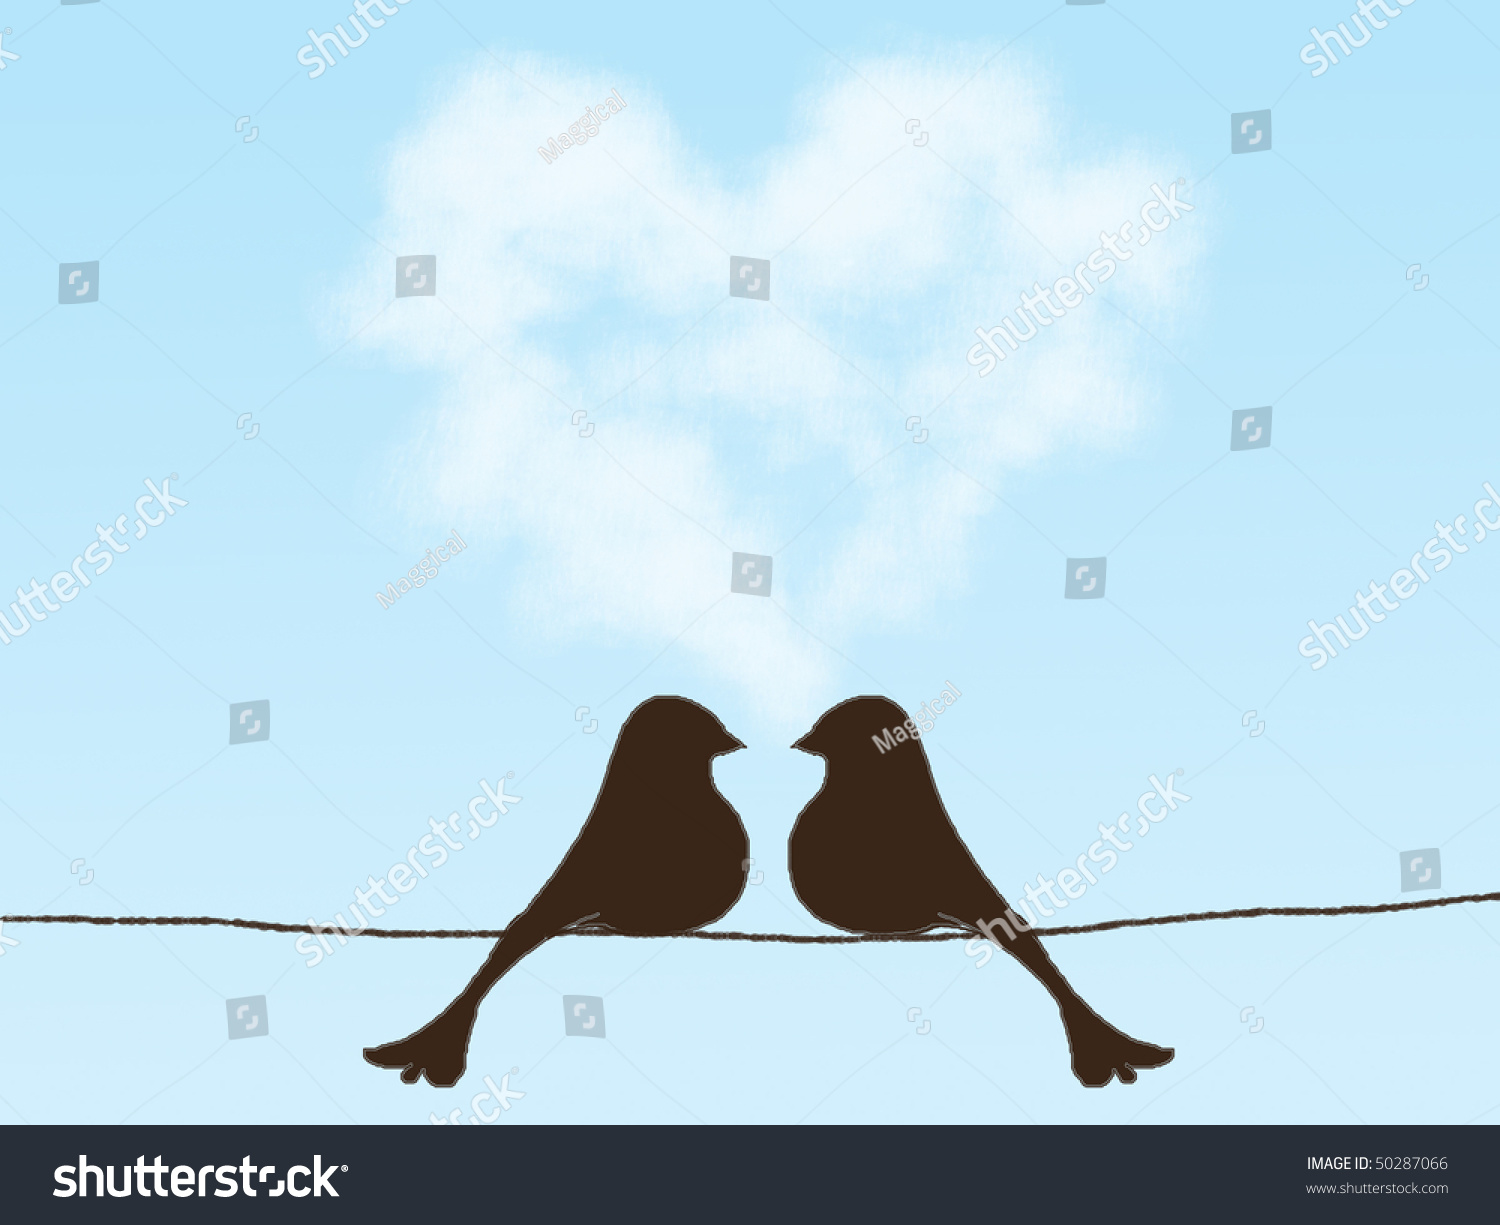 Two Birds On Telephone Wire Stock Illustration 50287066 - Shutterstock